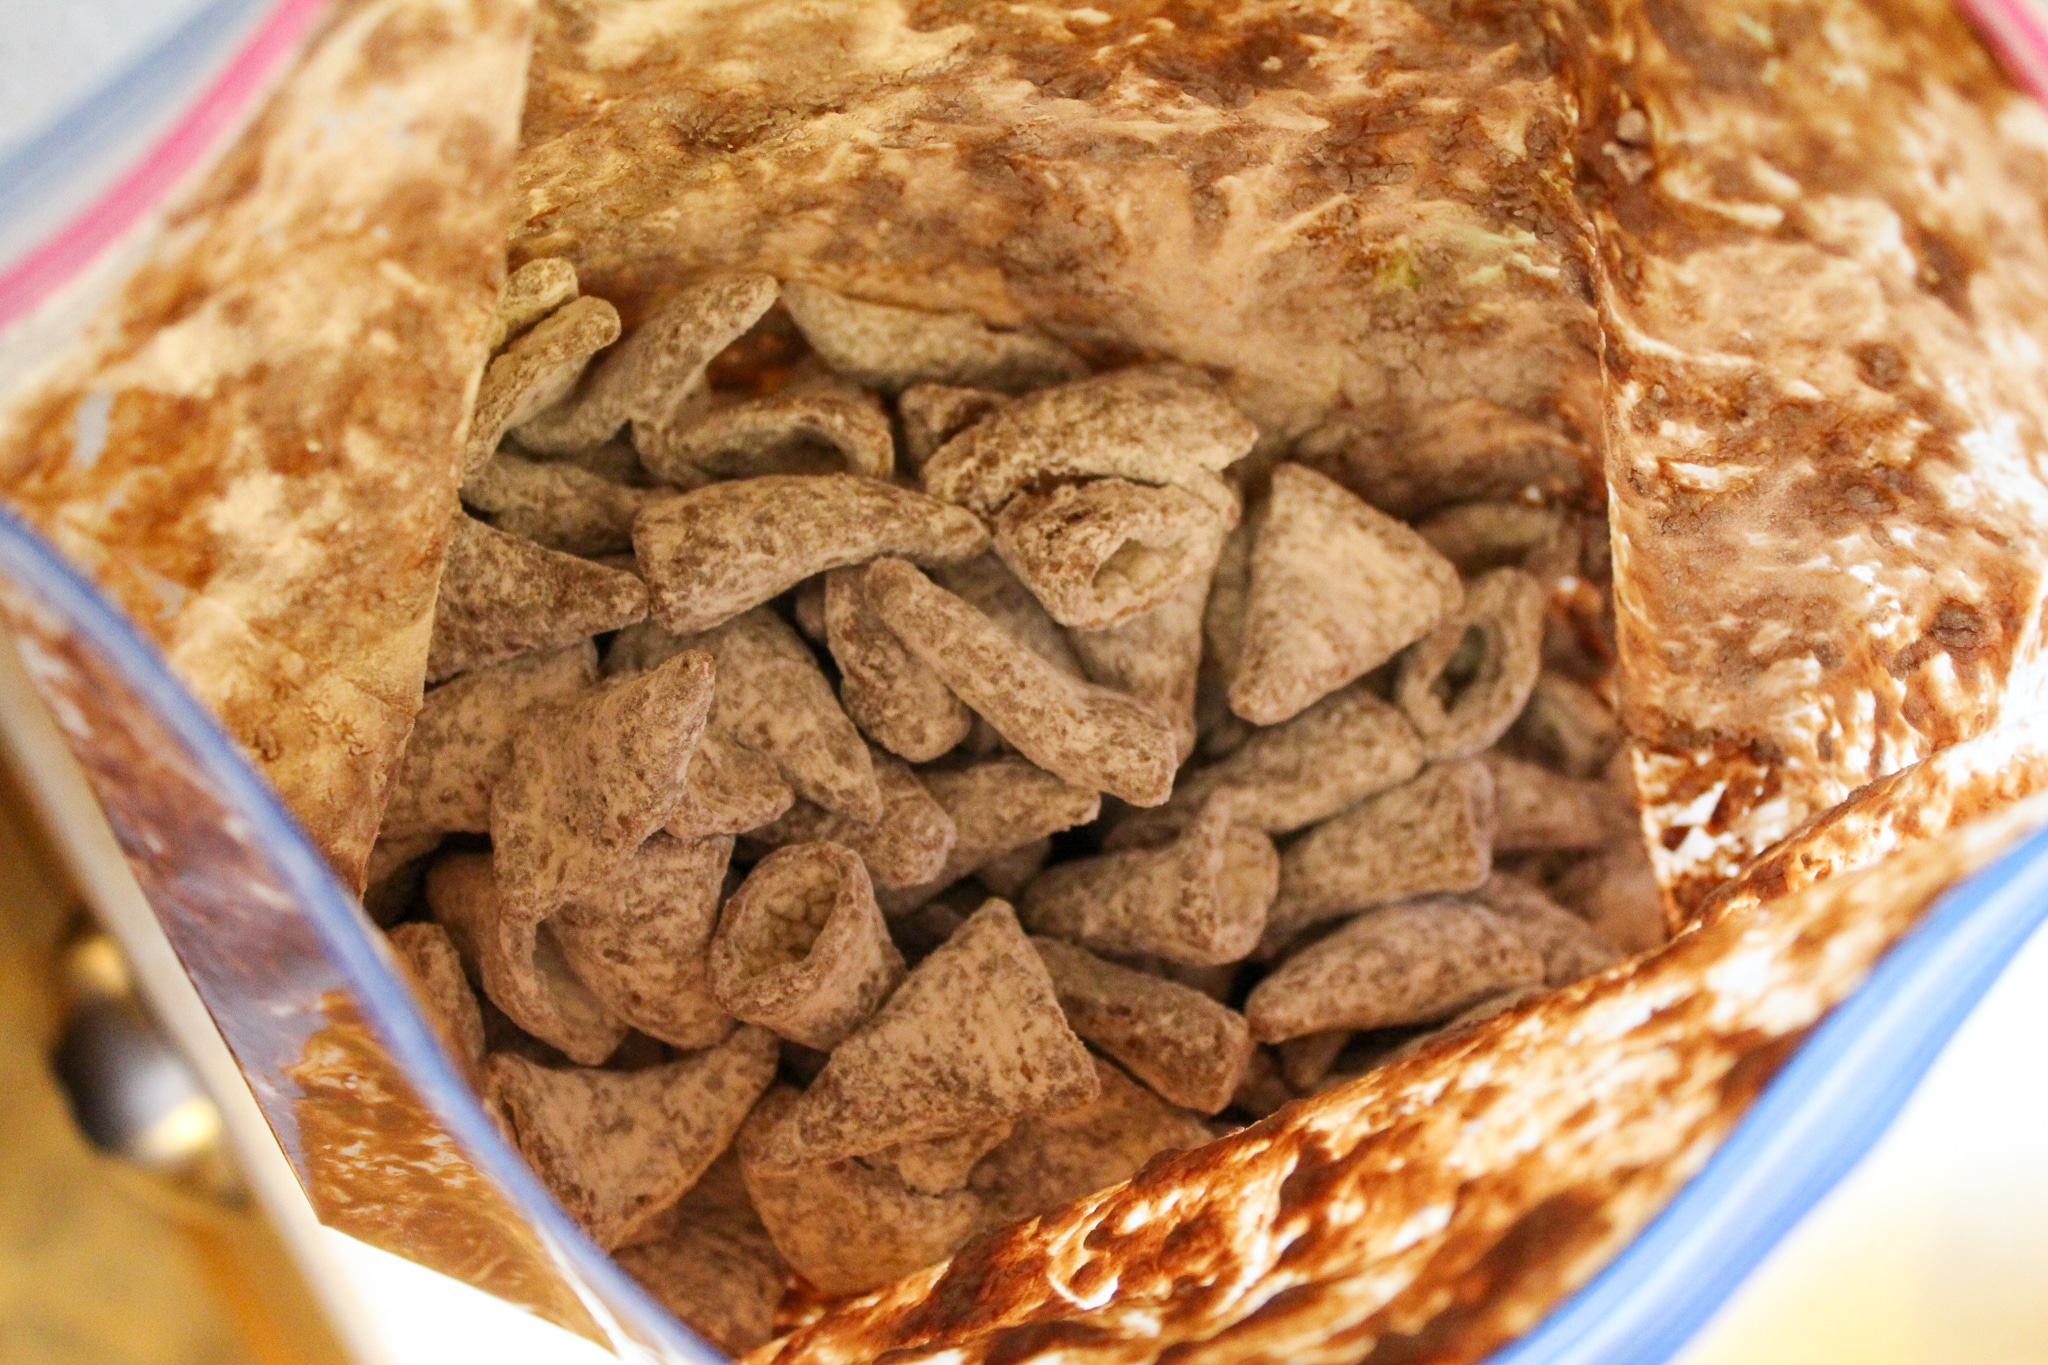 bugles with chocolate and powdered sugar in a bag